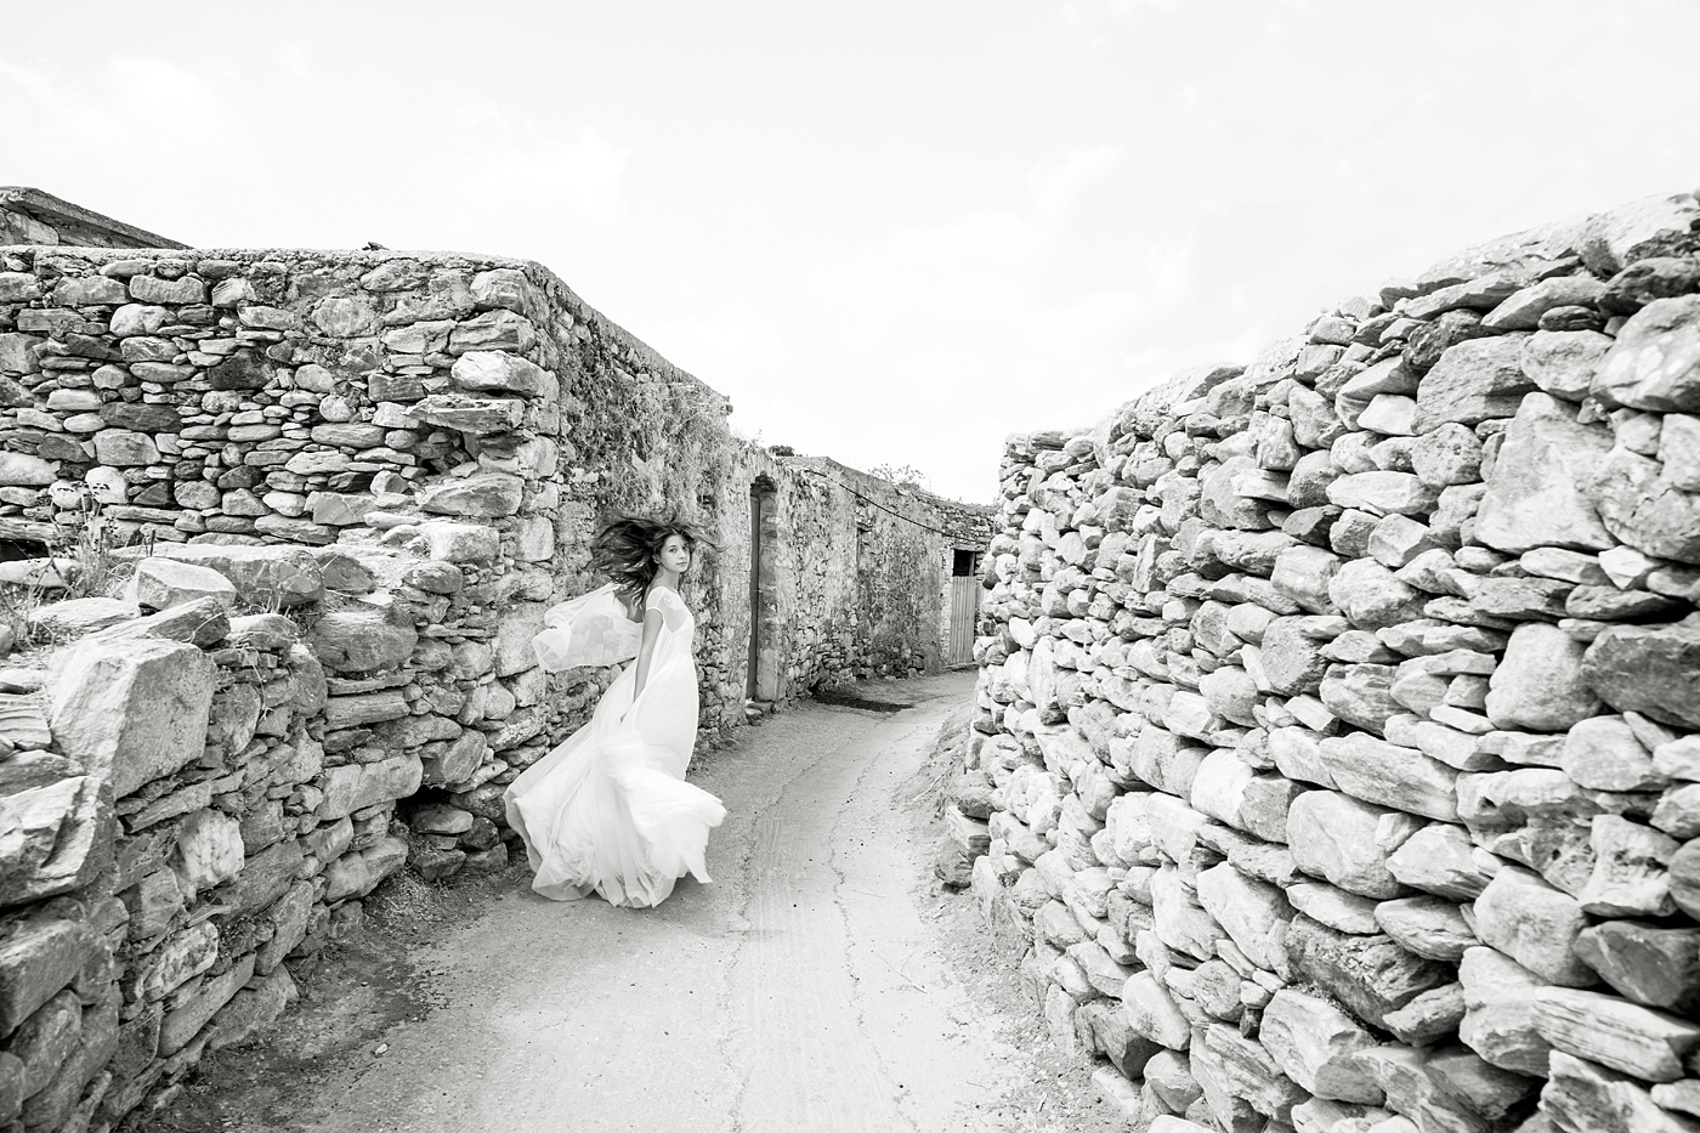 Bride running amongst the ruins on Naxos Island in Greece